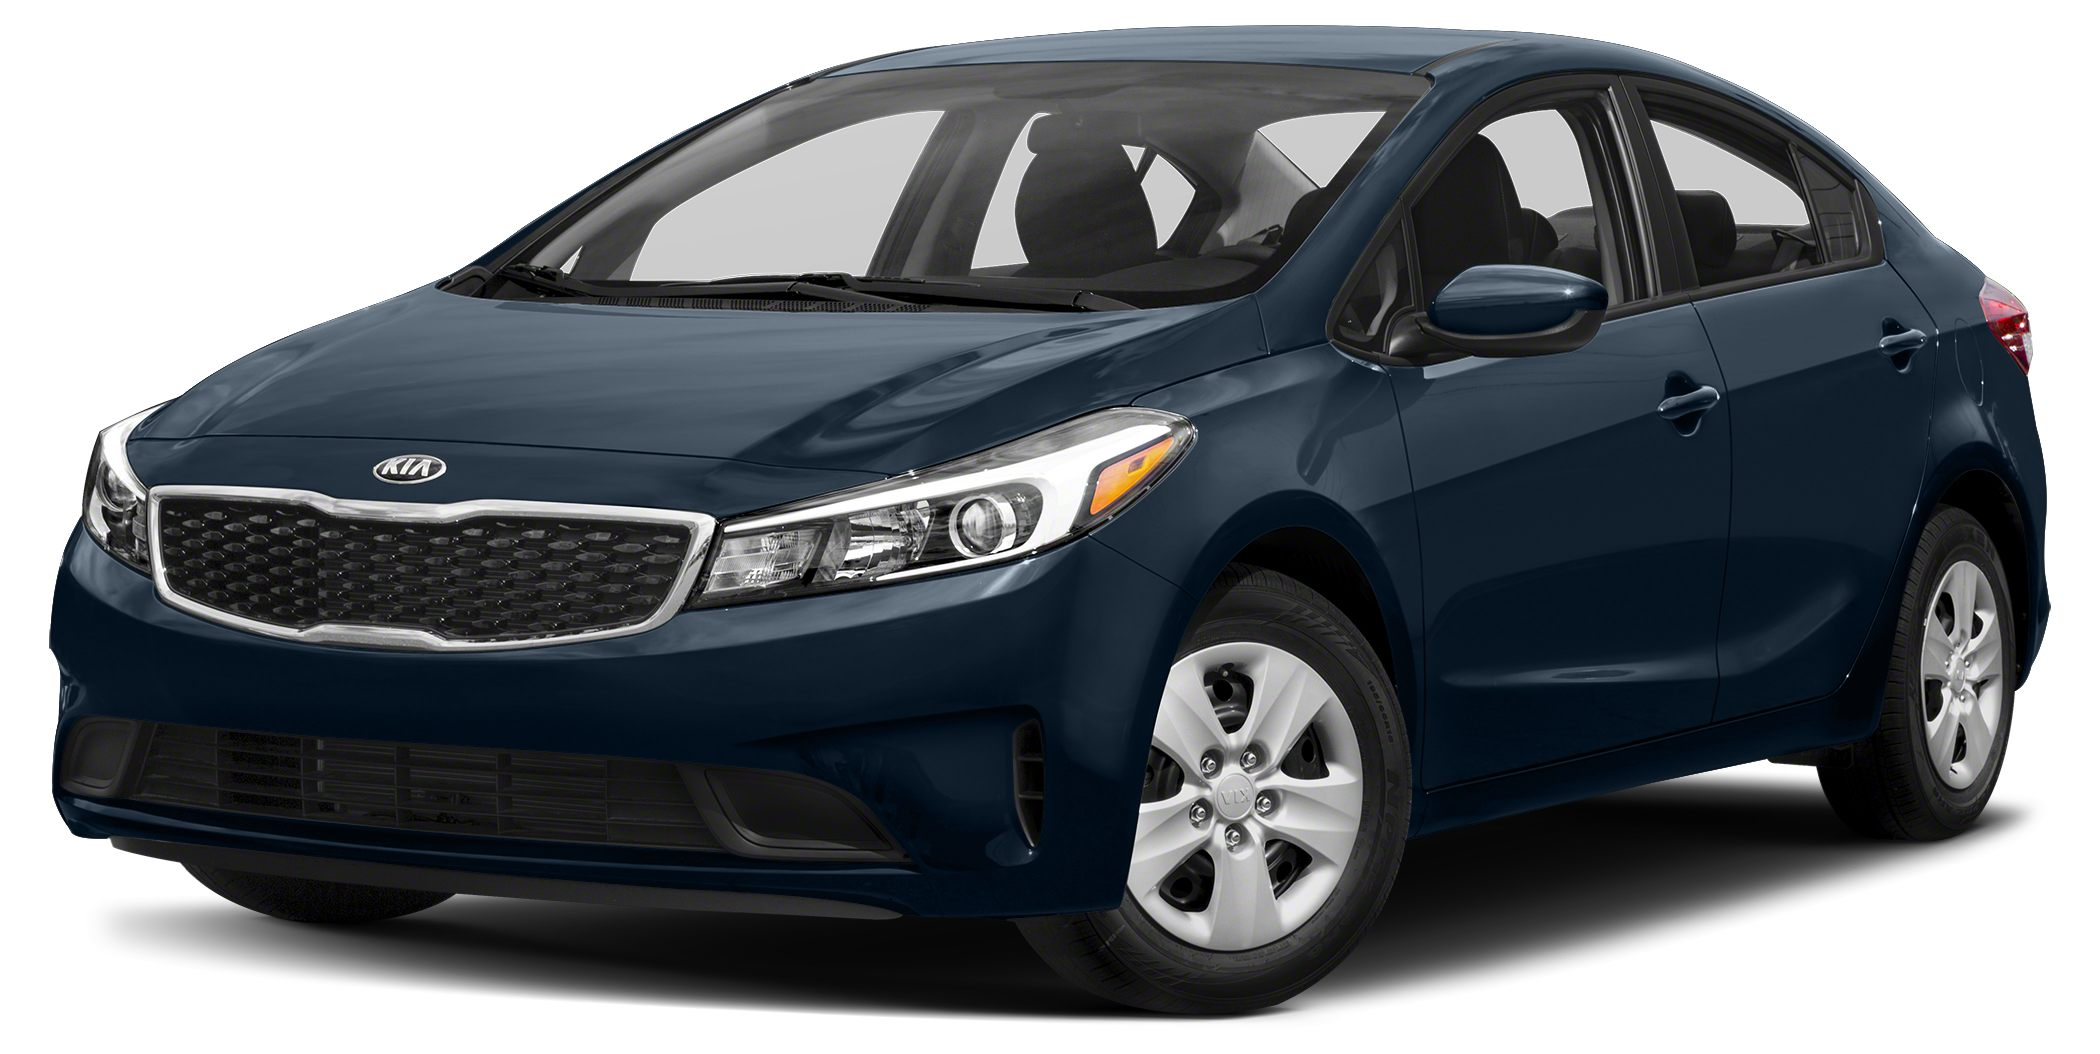 2017 Kia Forte LX Miles 22Color Deep Sea Blue Stock K16825 VIN 3KPFK4A71HE097641